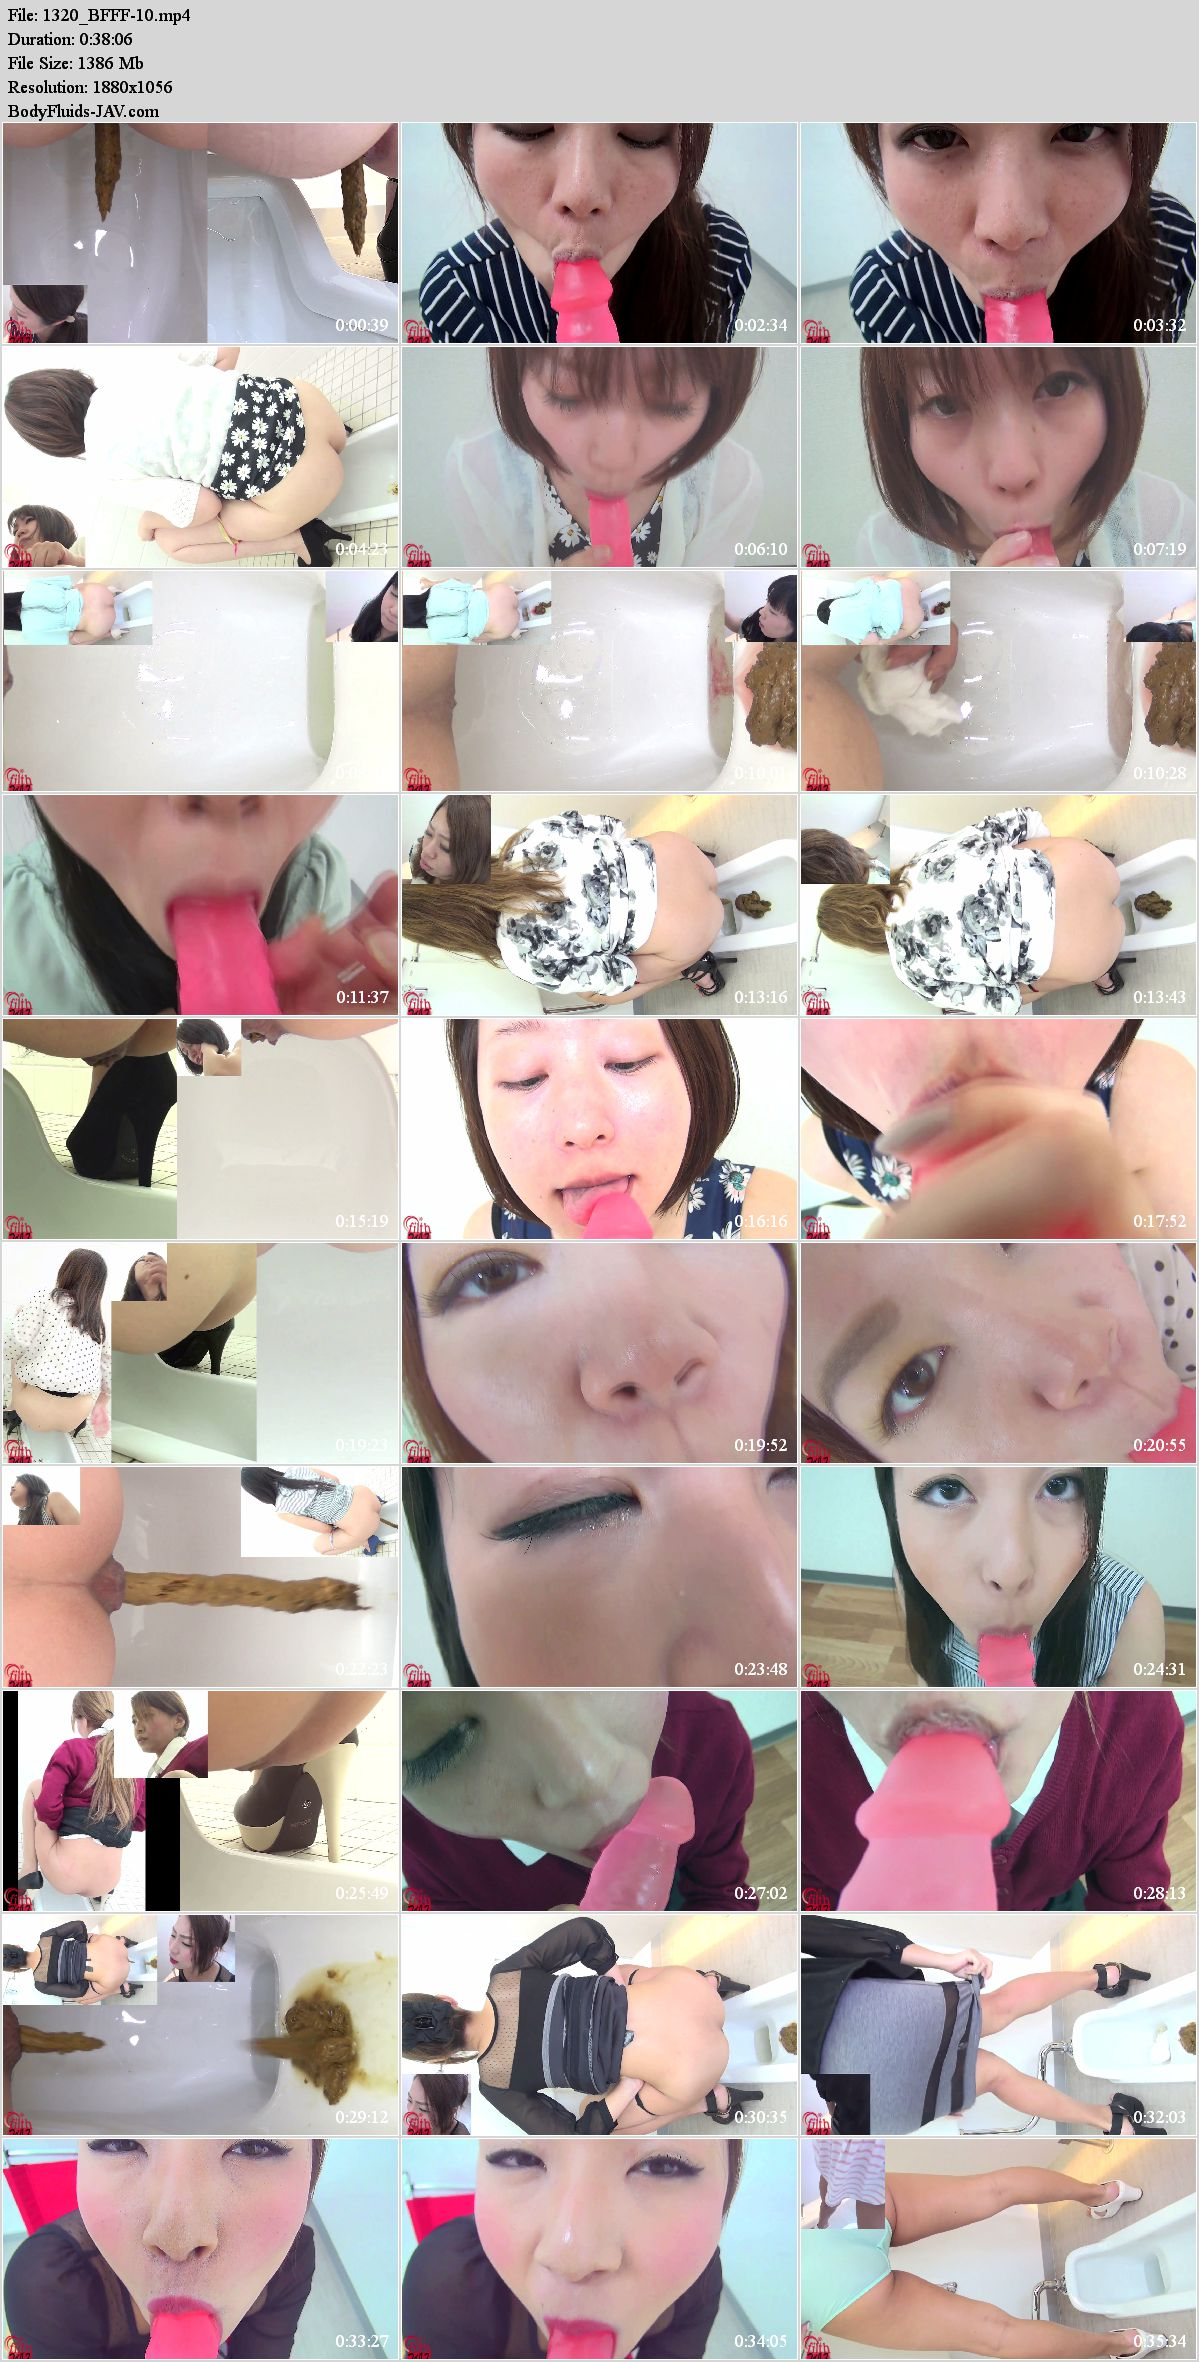 BFFF-10 Women suck dildo in toilet after defecation. (HD 1080p)